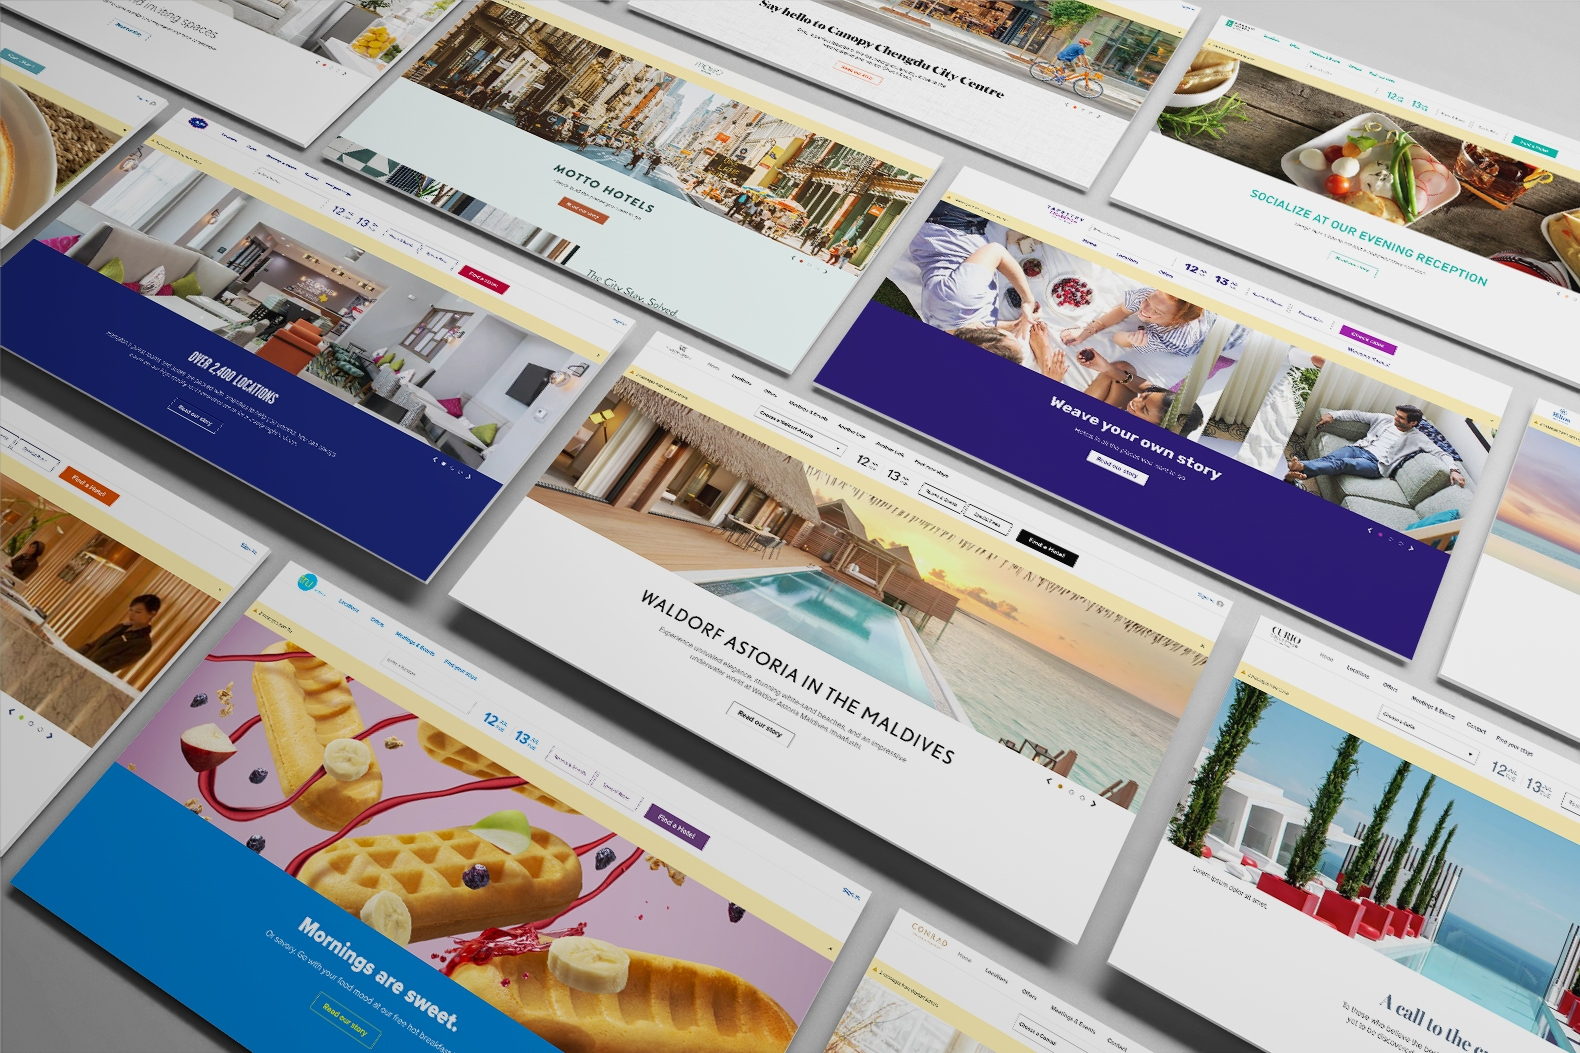 Angled composite of all fourteen of Hilton's brand websites